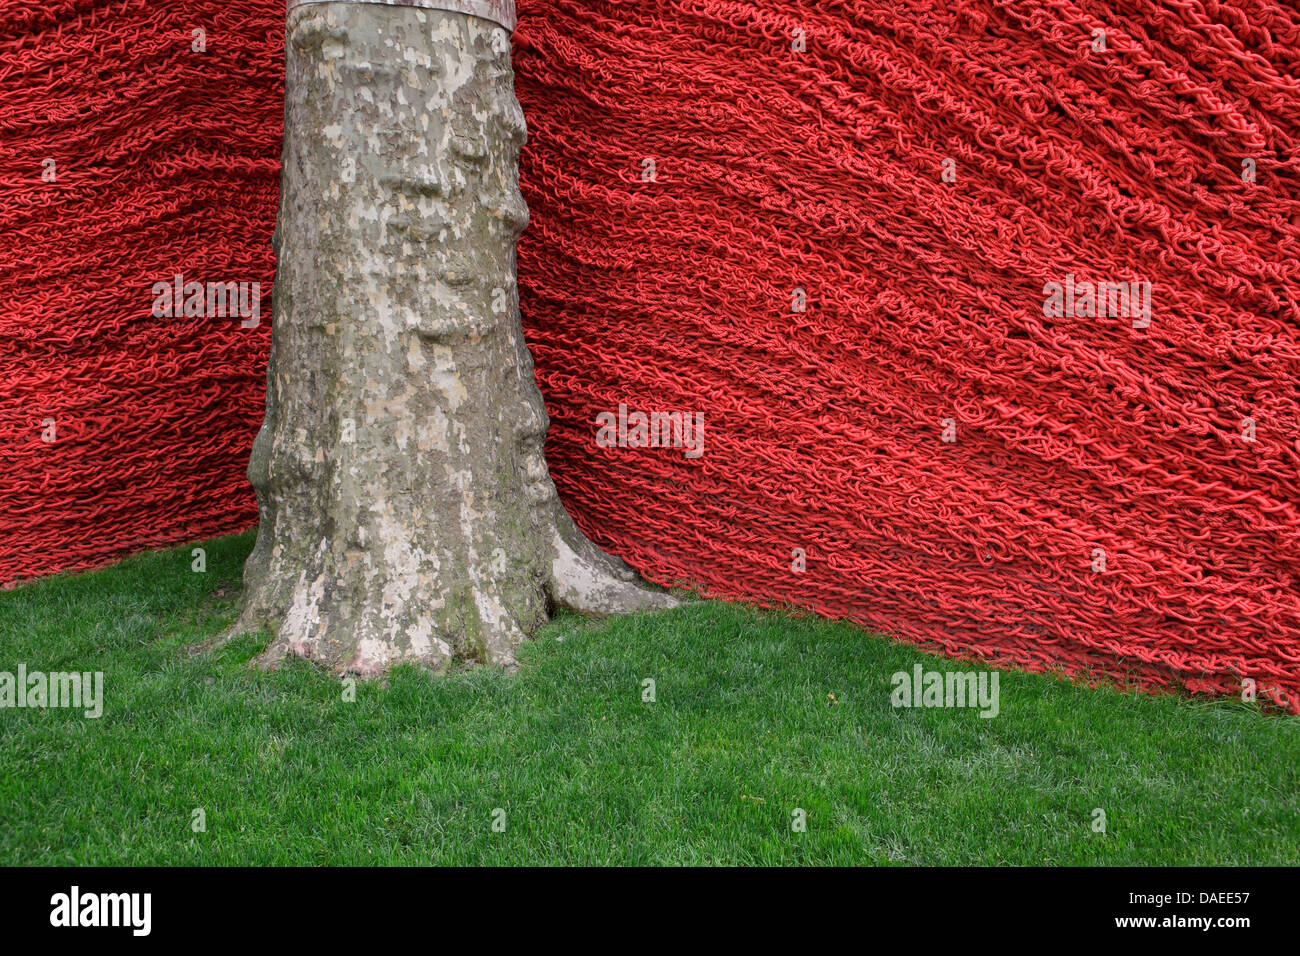 Orly Genger art installation in Madison Square Park, New York City - Stock Image